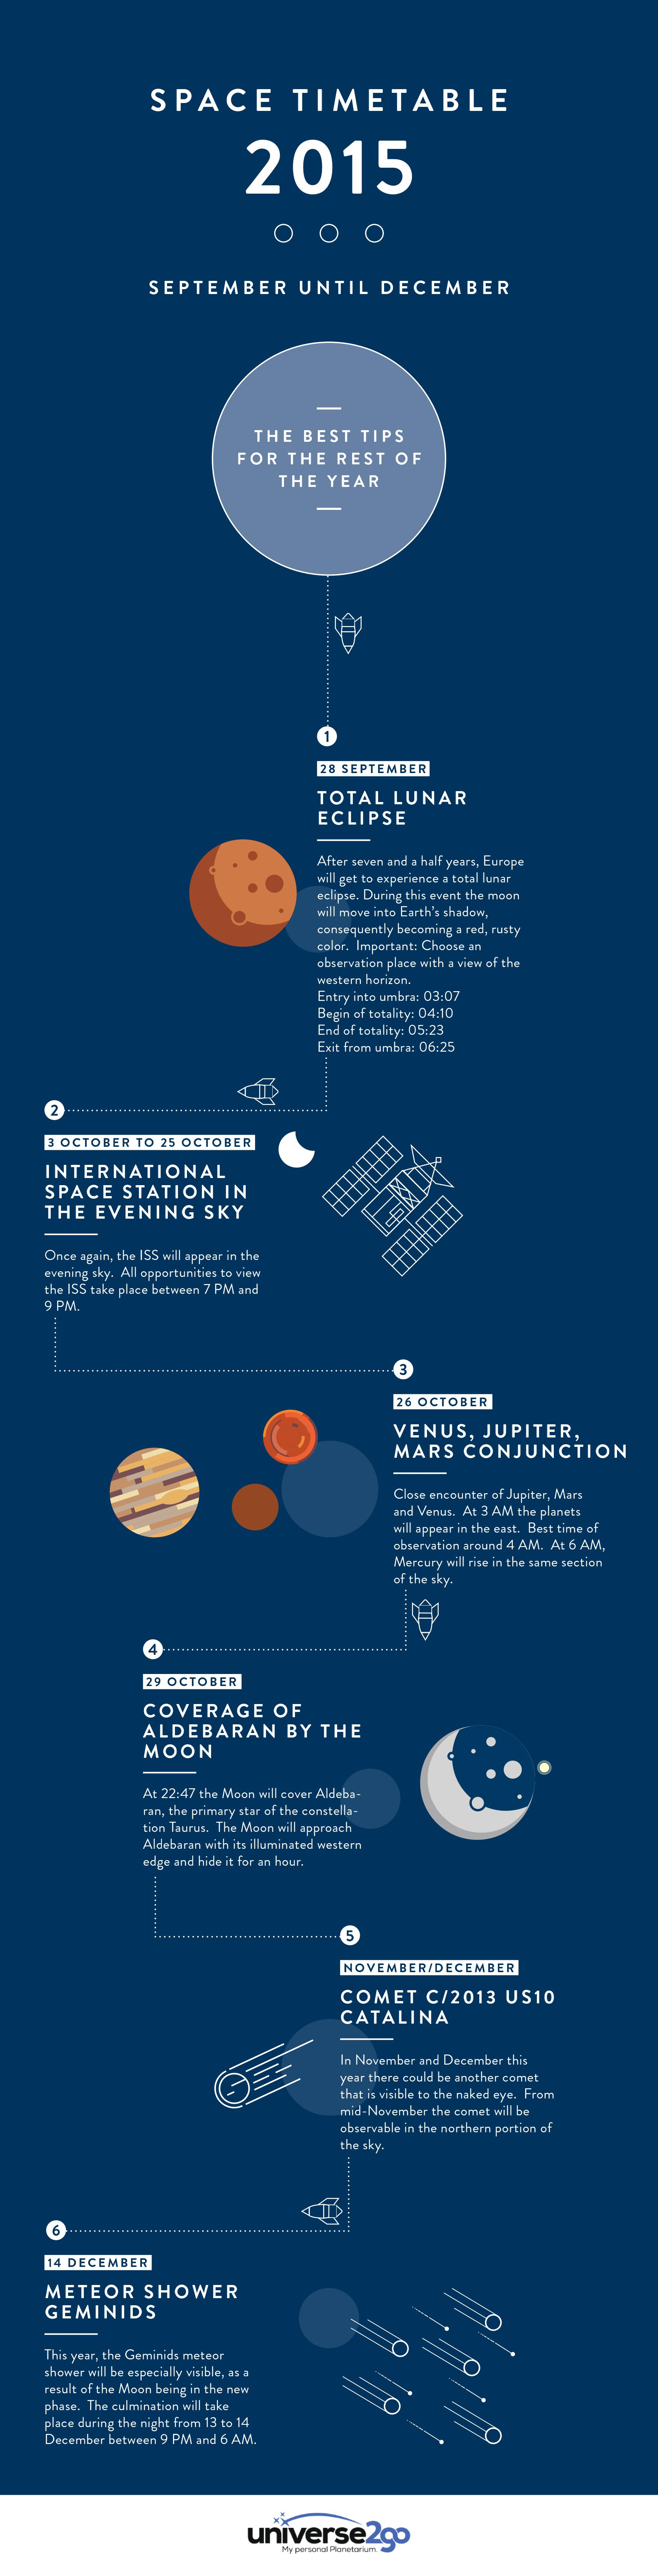 Infographic Space Timetable 2015